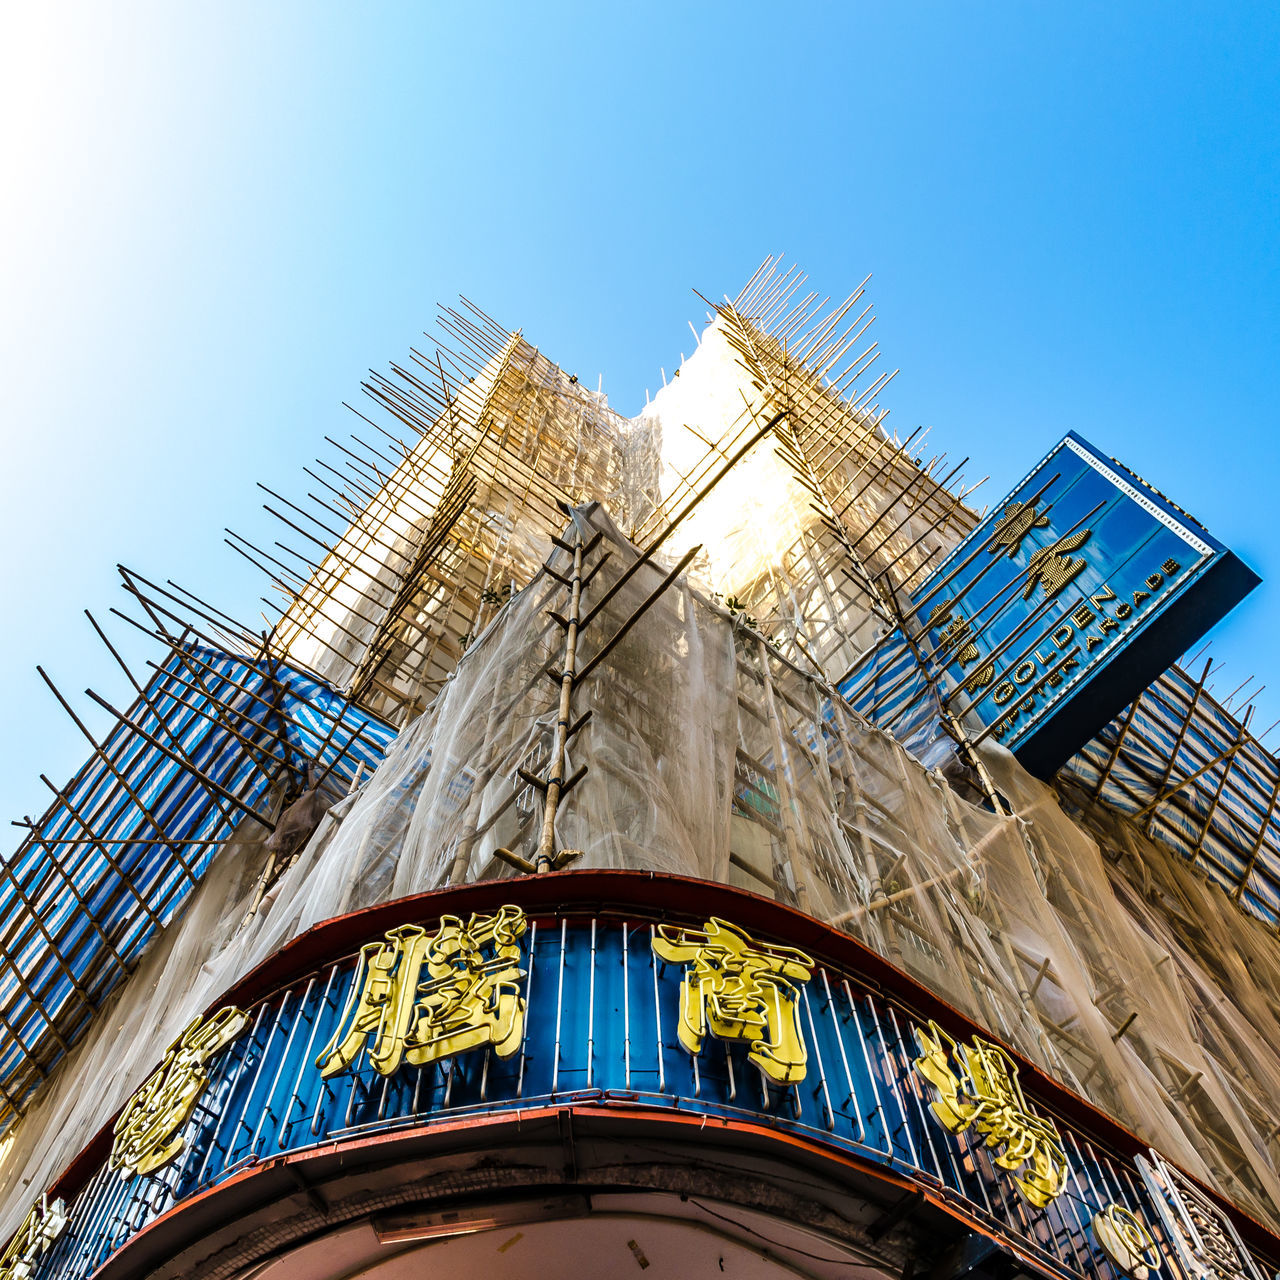 Architecture Bamboo Bamboo Scaffolding Blue Building Exterior Built Structure Chinese Chinese Characters City Clear Sky Golden Computer Plaza Hong Kong Hong Kong Architecture Hong Kong City Low Angle View Neon Lights Neon Sign Netting Netting Scaffolding No People Outdoors Scaffolding